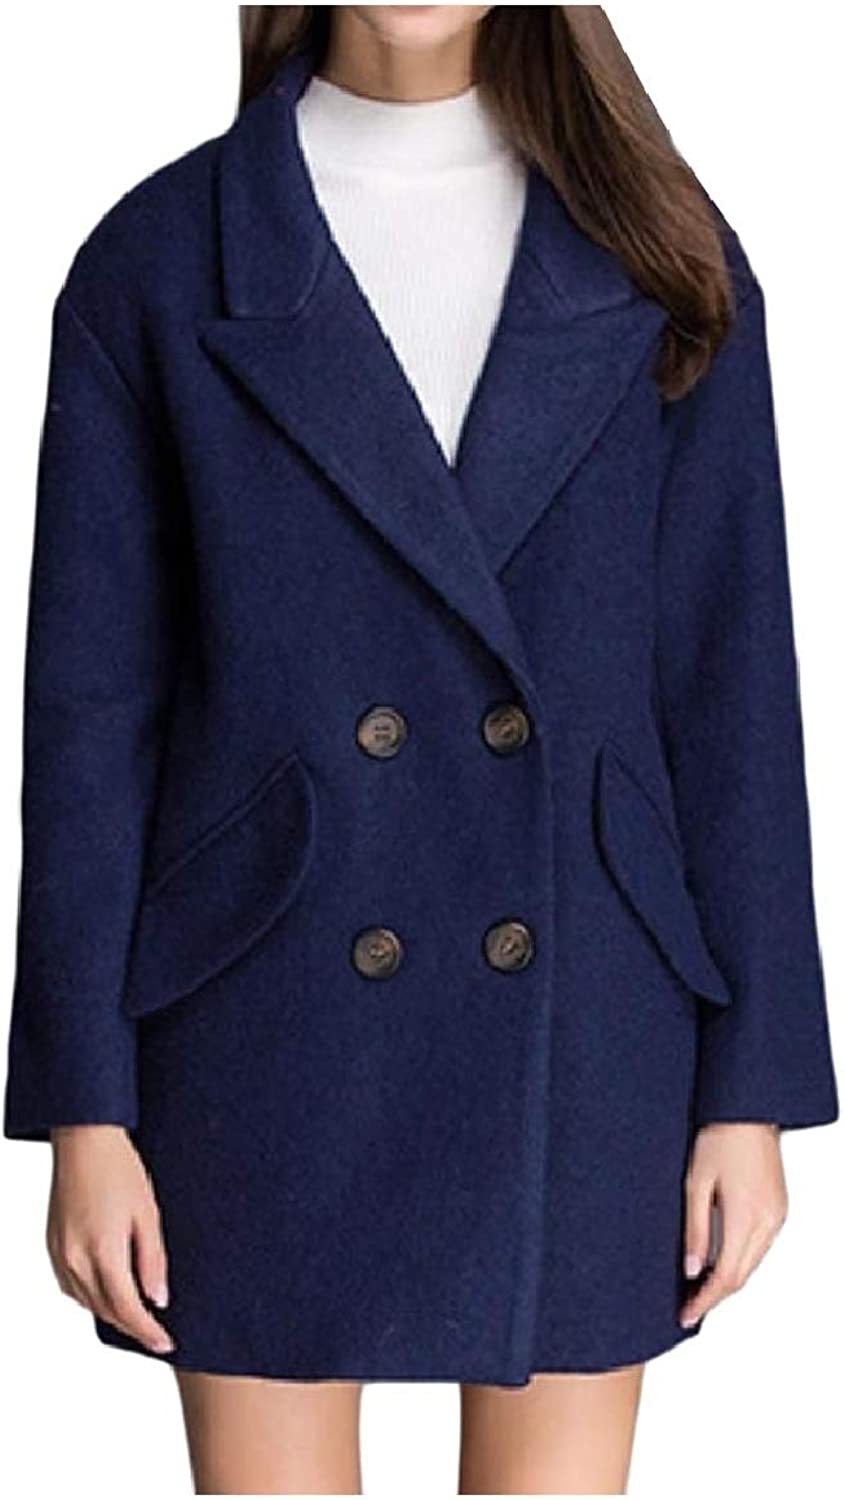 Baseby Womens Casual Button PlusSize Notch Lapel Pea Coat Jacket